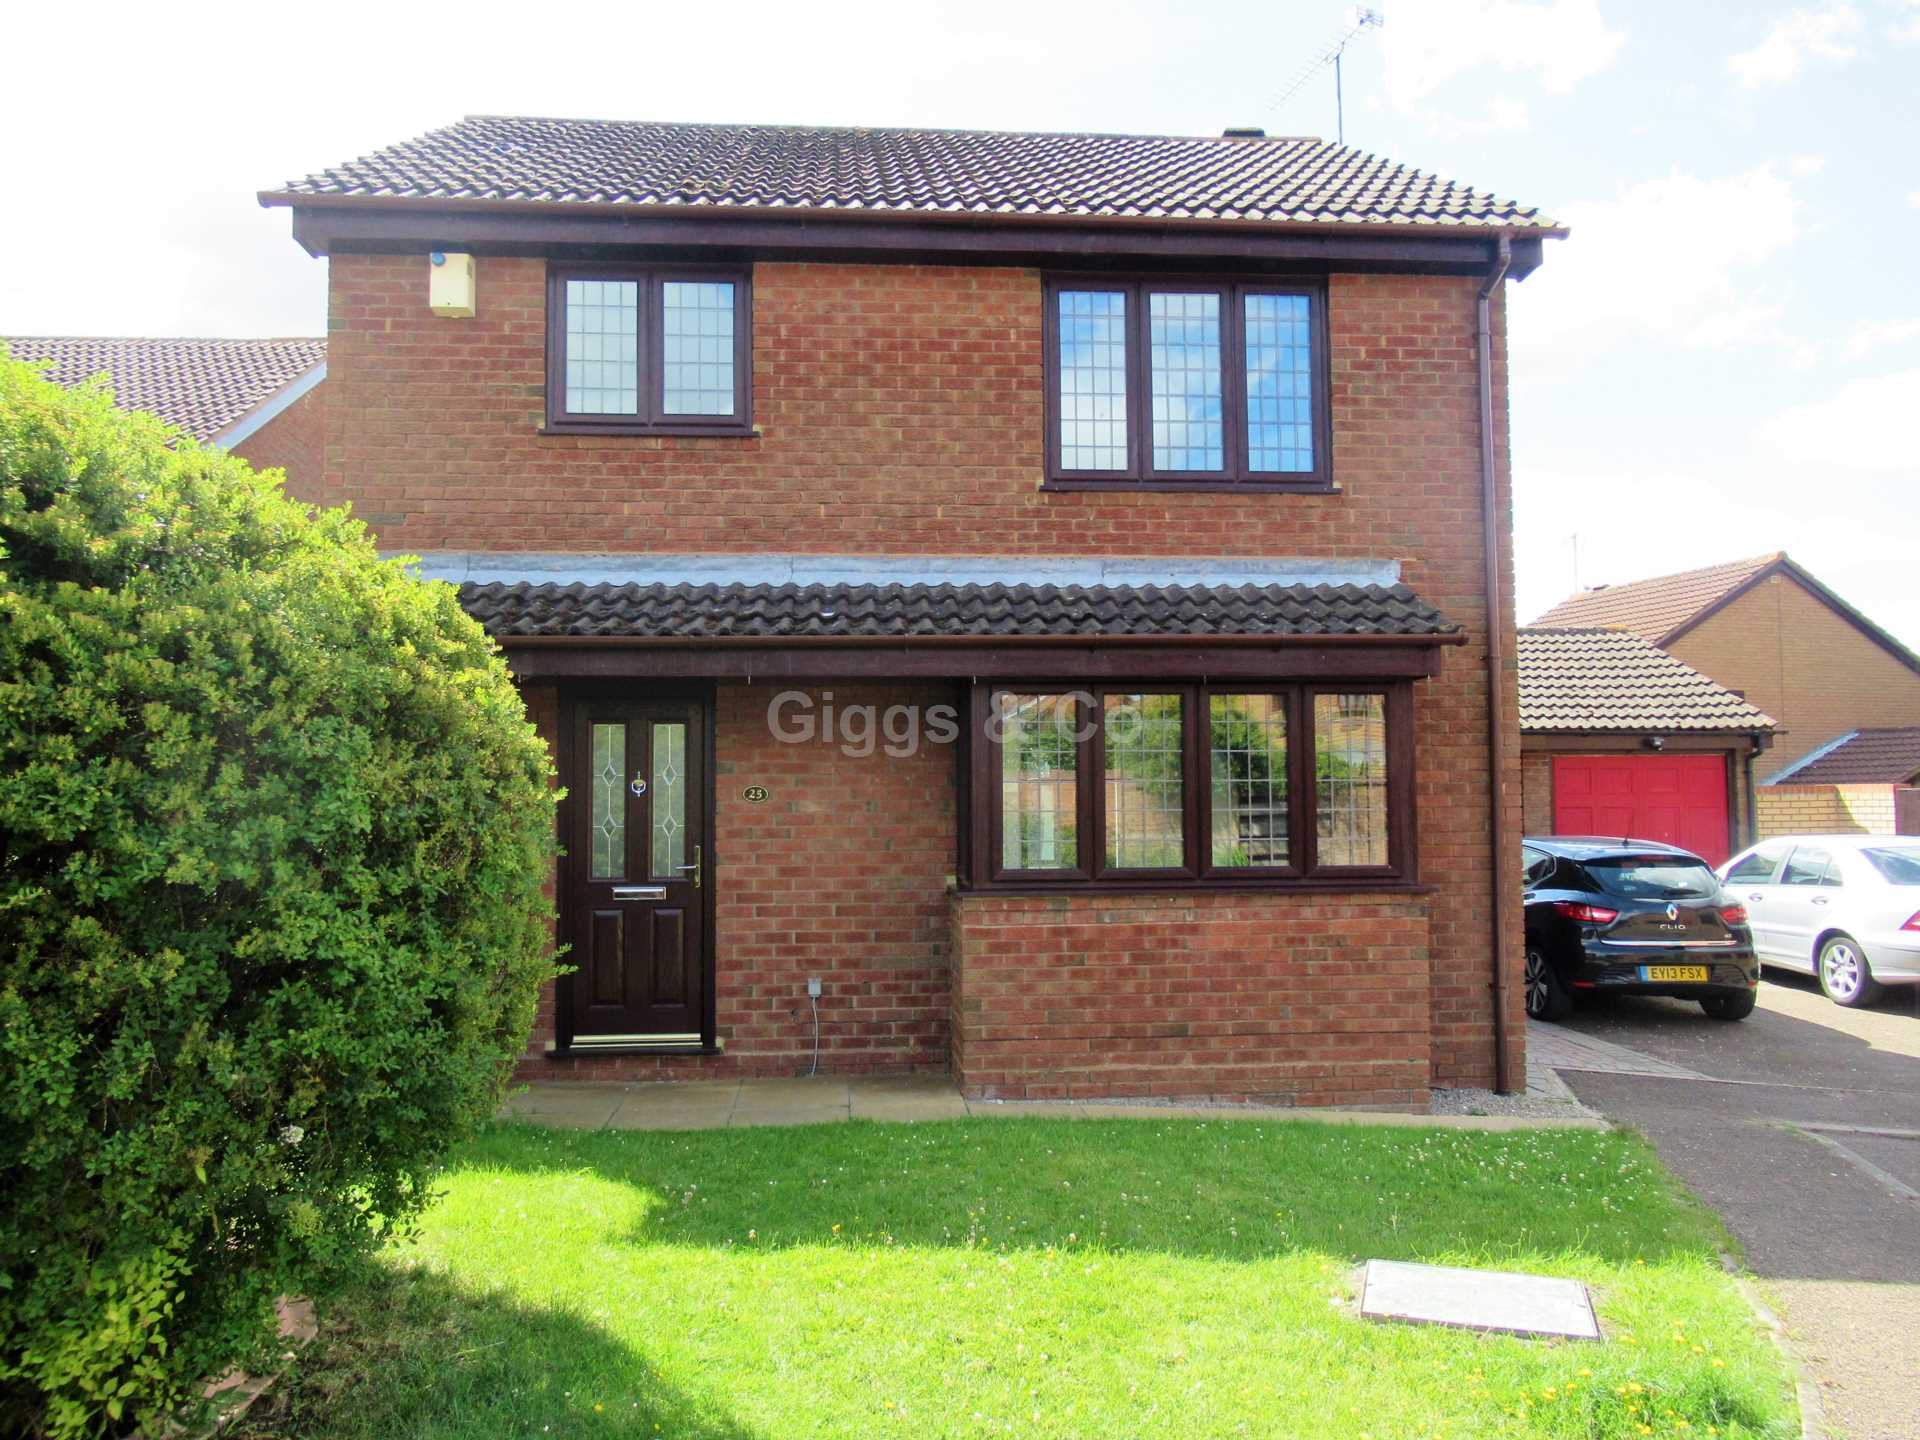 3 bed detached-house to rent in Fernheath, Luton, LU3